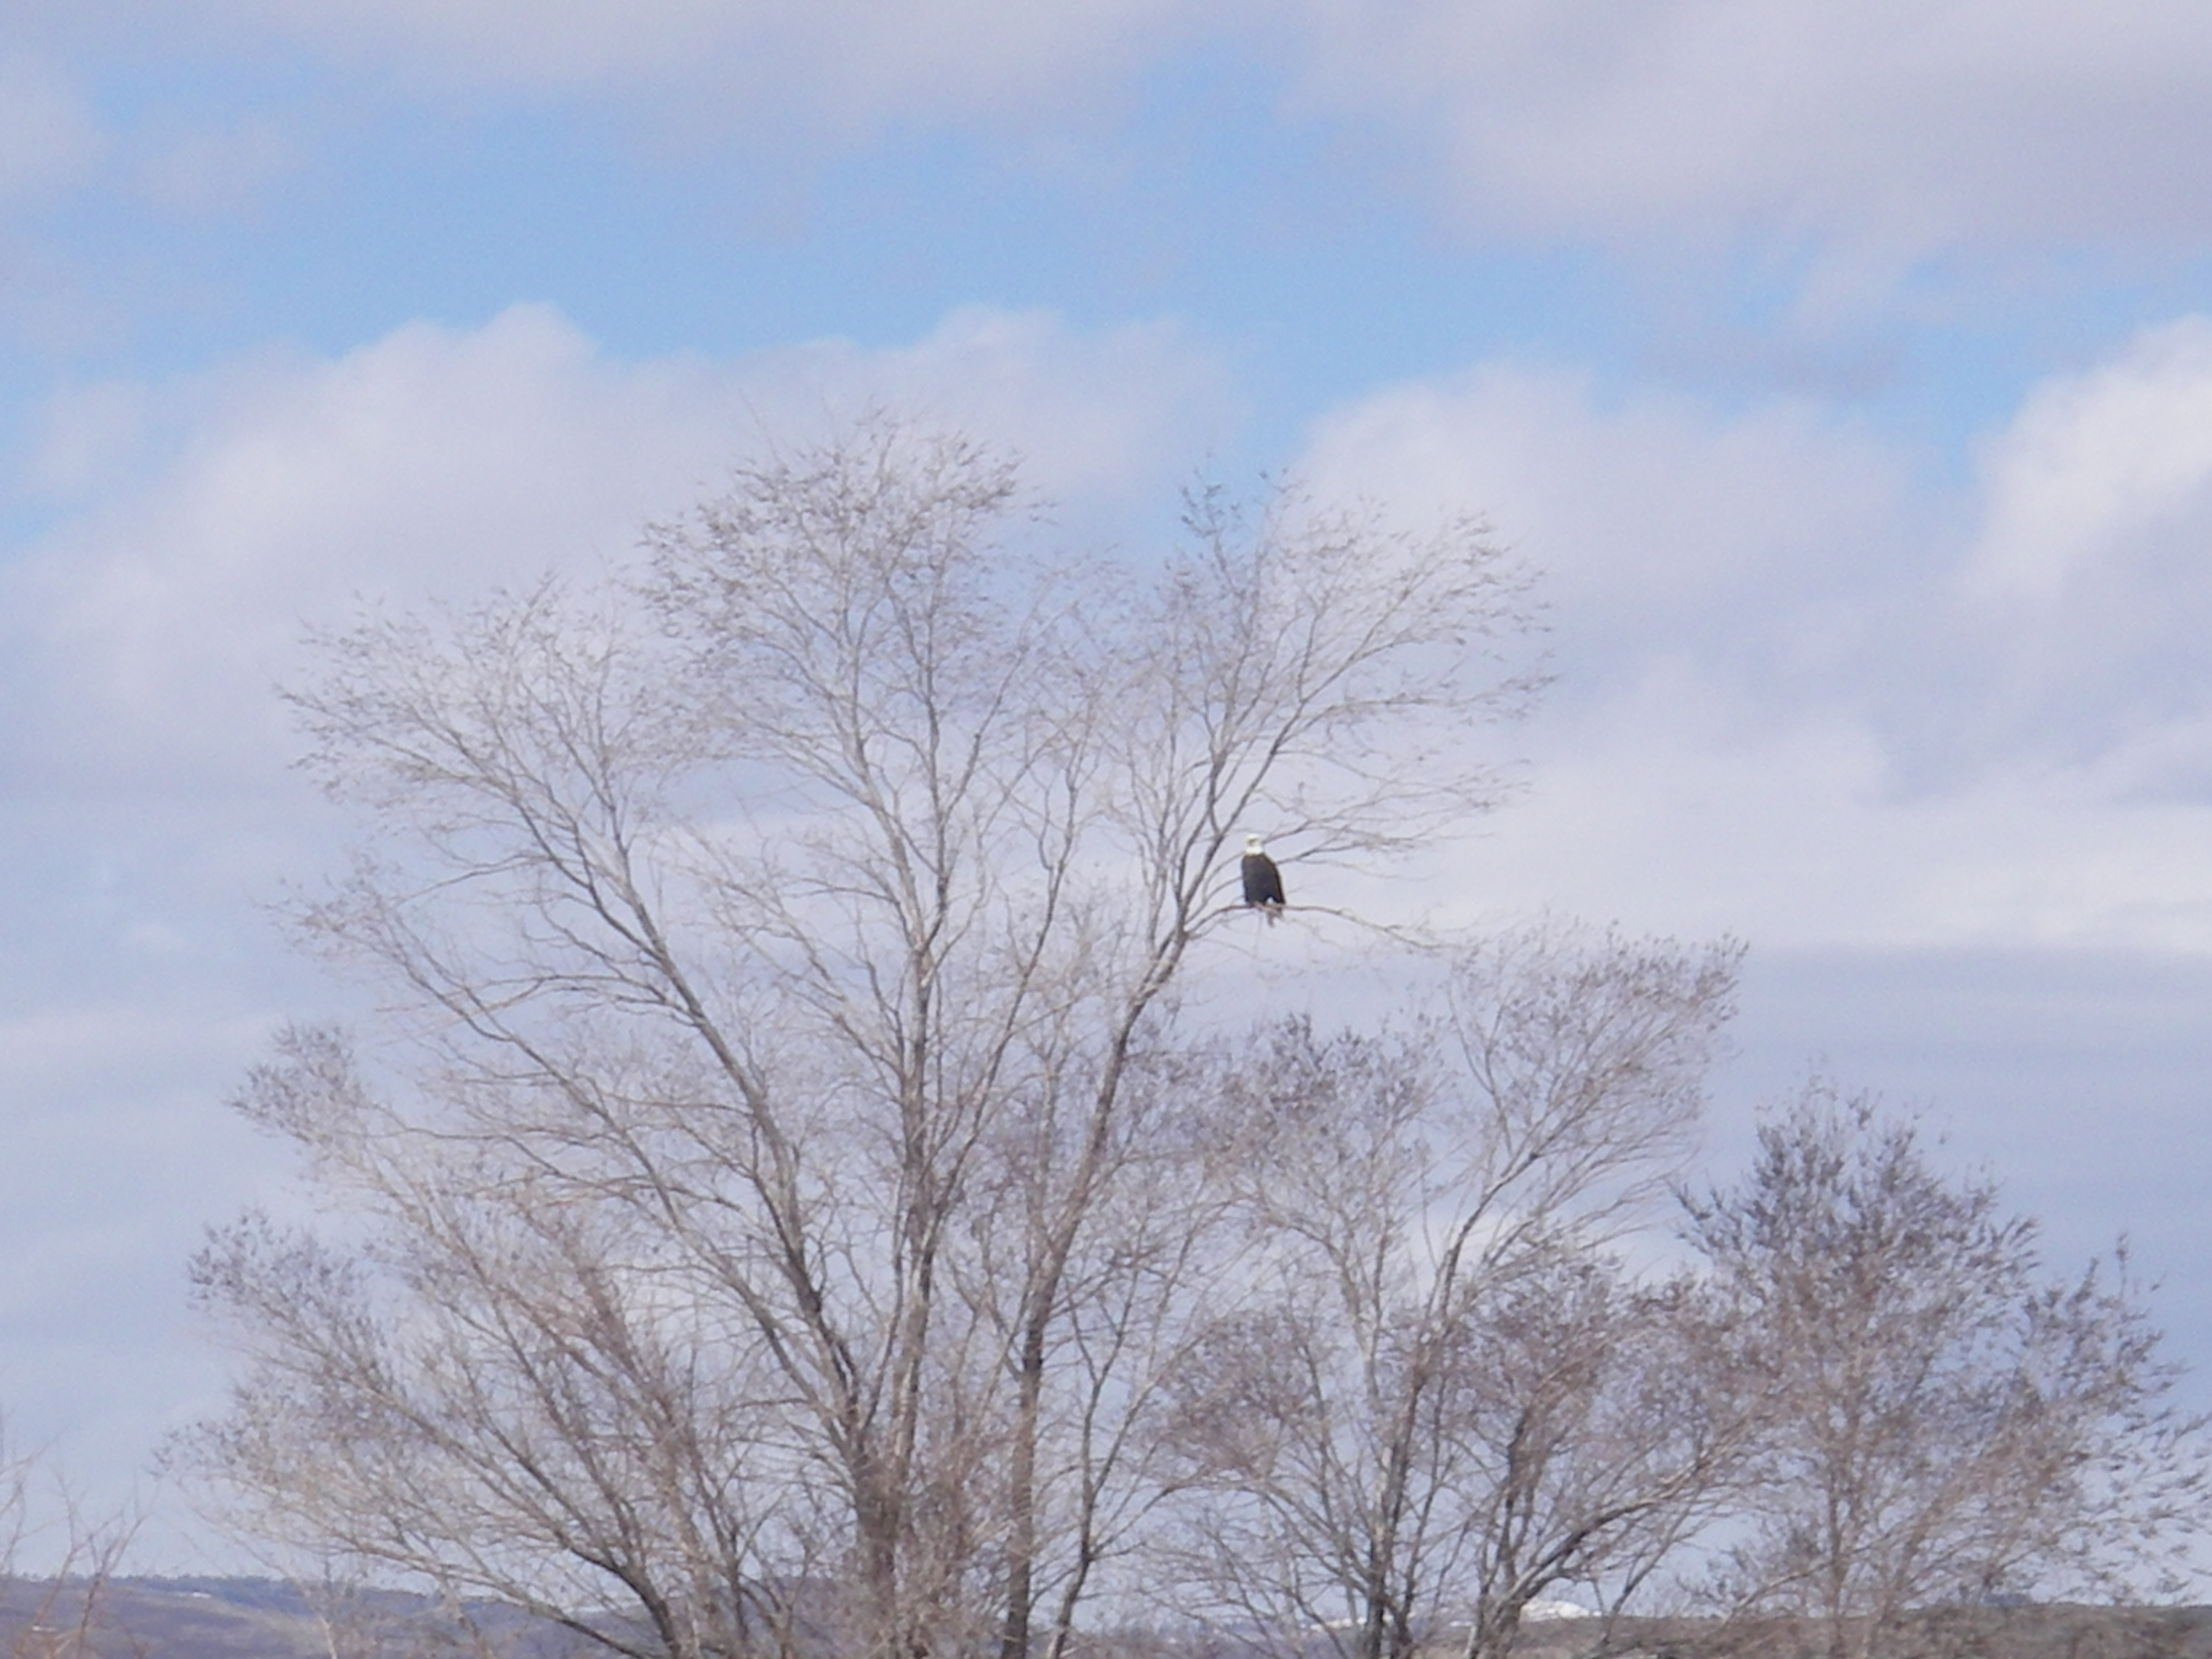 Bald eagles were out and about.